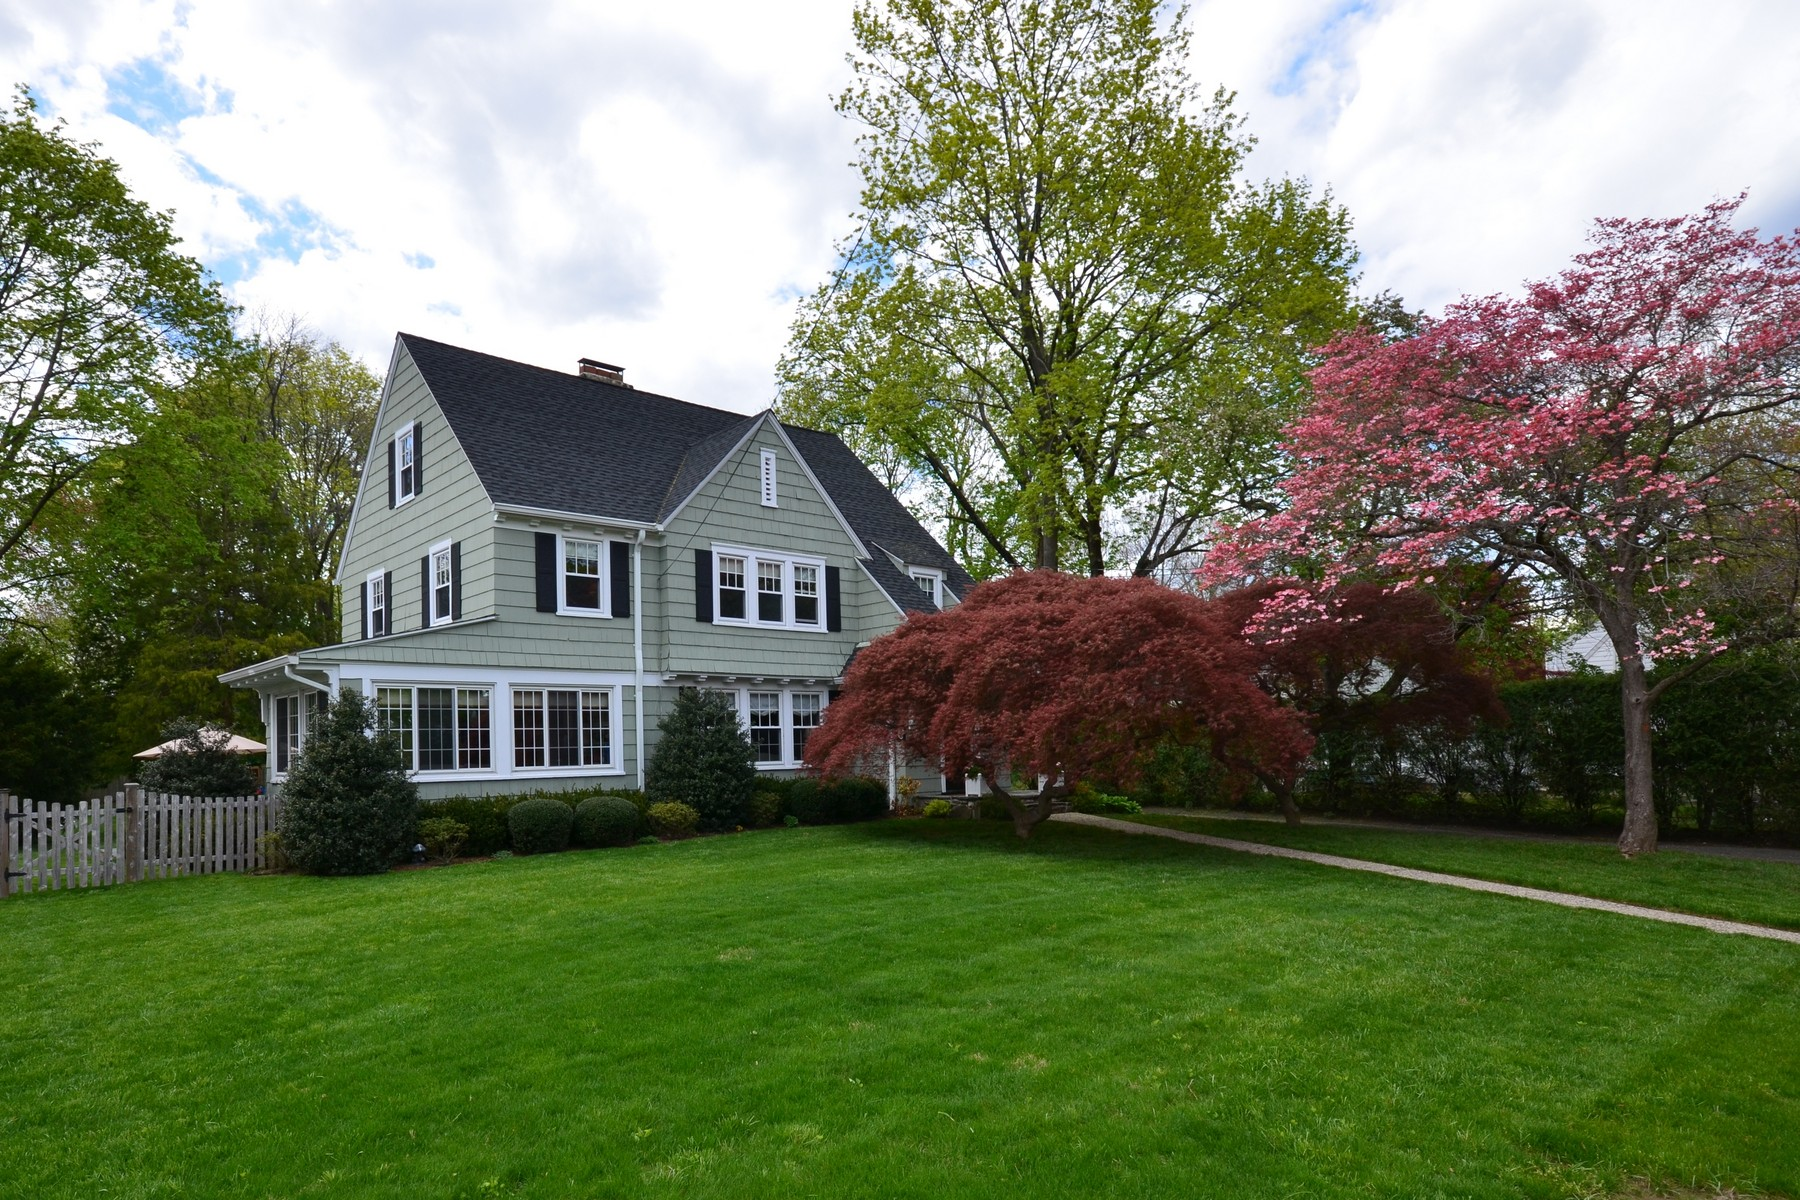 Single Family Home for Sale at Completely Remodeled Vintage Colonial 48 Field Street Stamford, Connecticut, 06906 United States